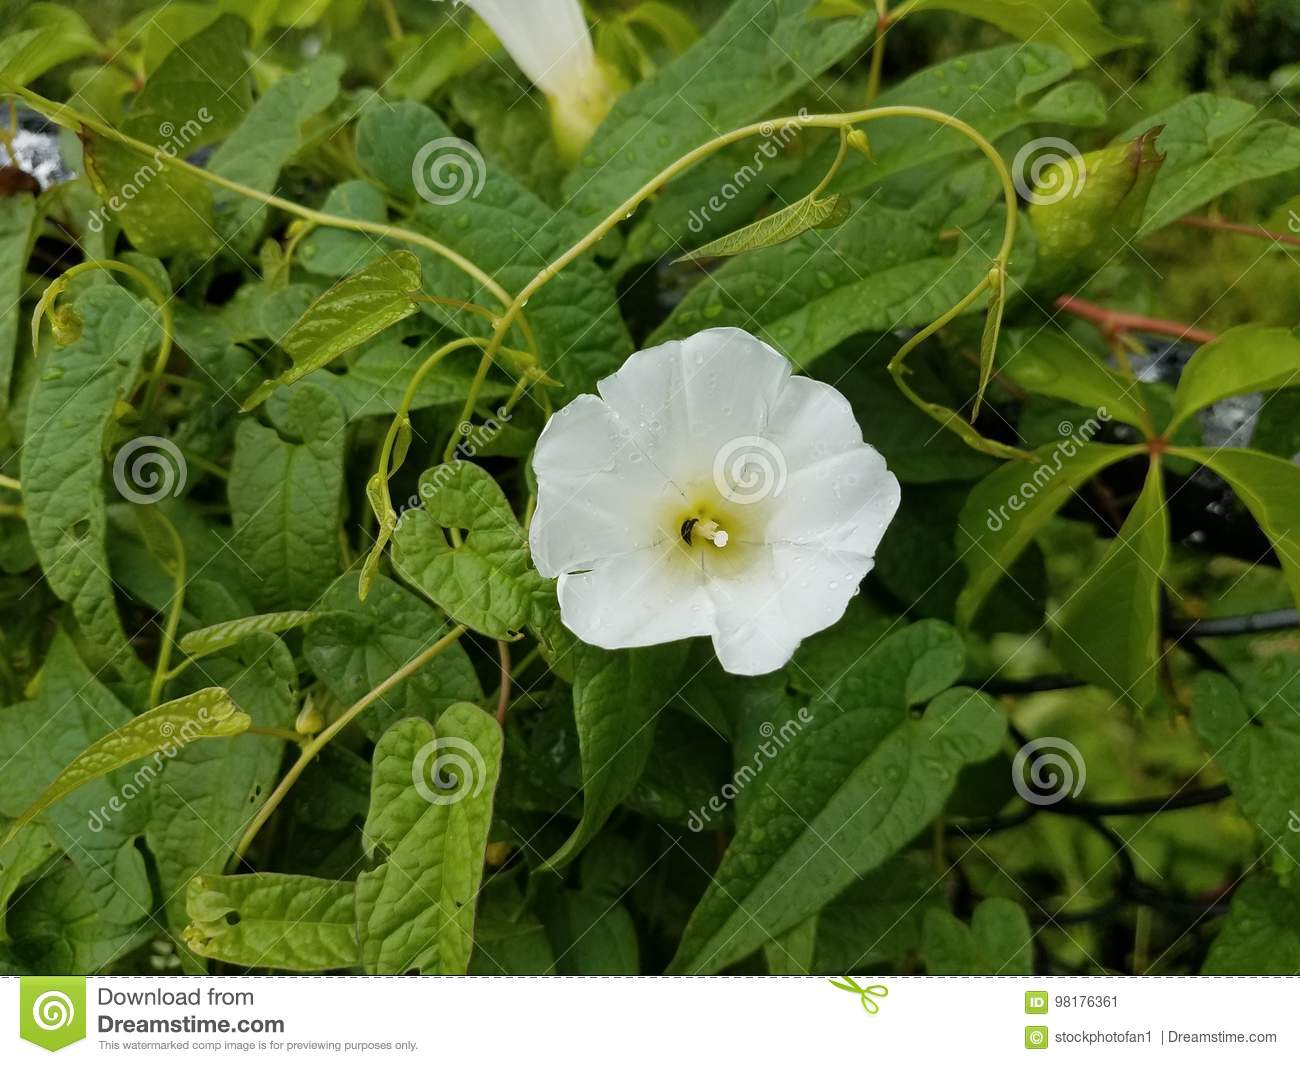 White Flower On Green Vine Stock Image Image Of Flora 98176361